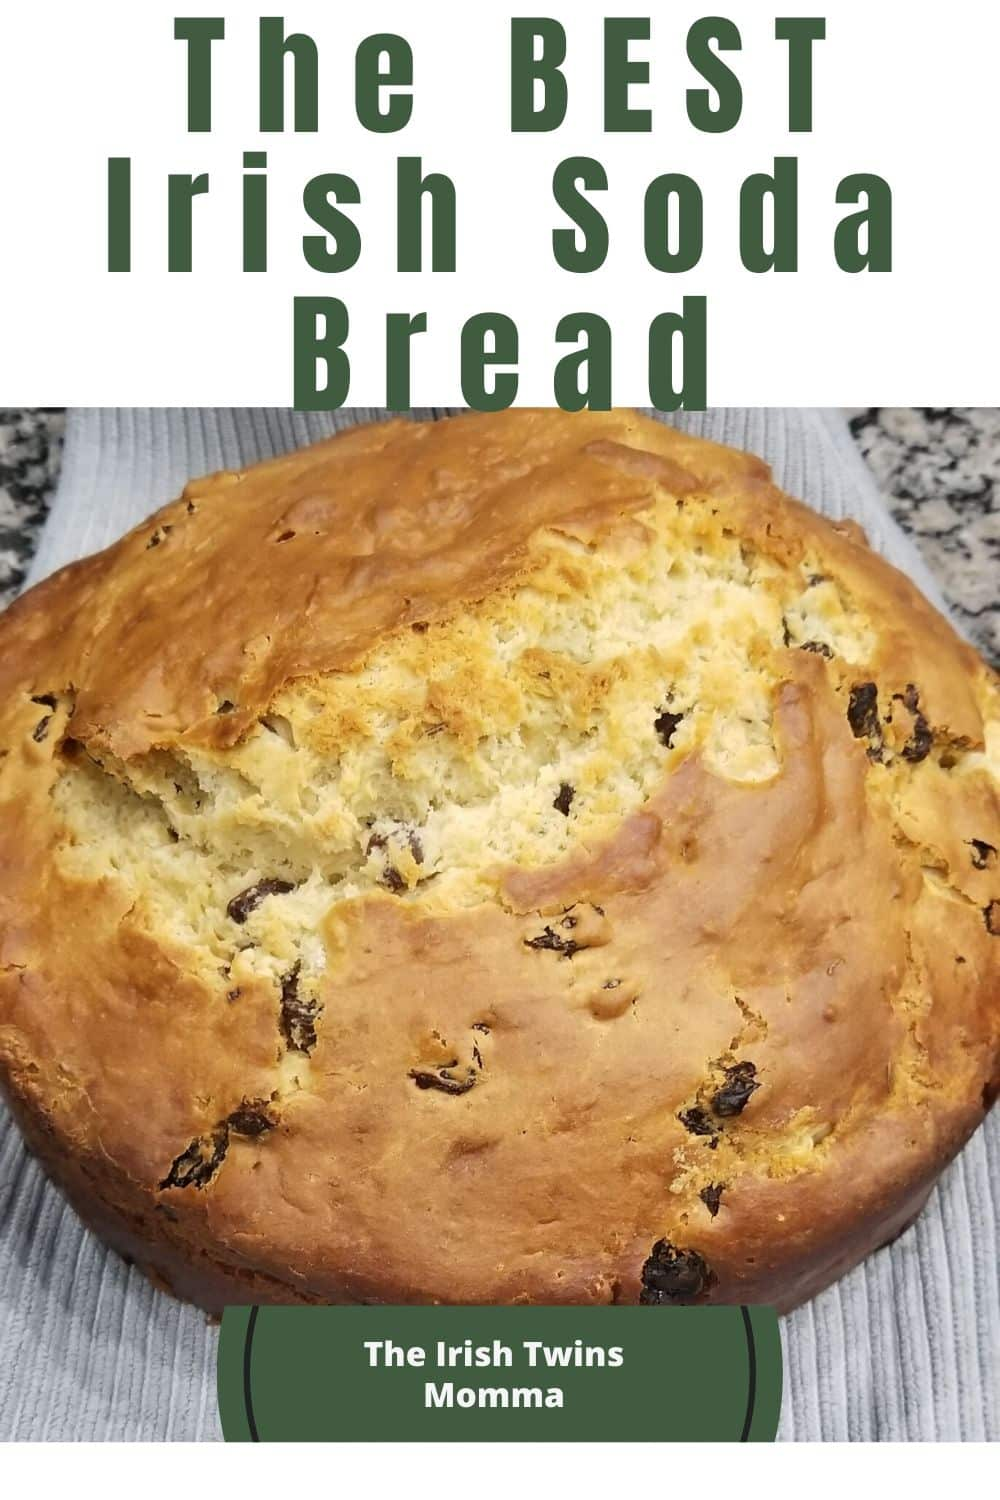 The history of Irish soda bread, as well as classic Irish soda bread and the BEST ever recipe for Irish soda bread to serve with corn beef and cabbage. via @irishtwinsmom11